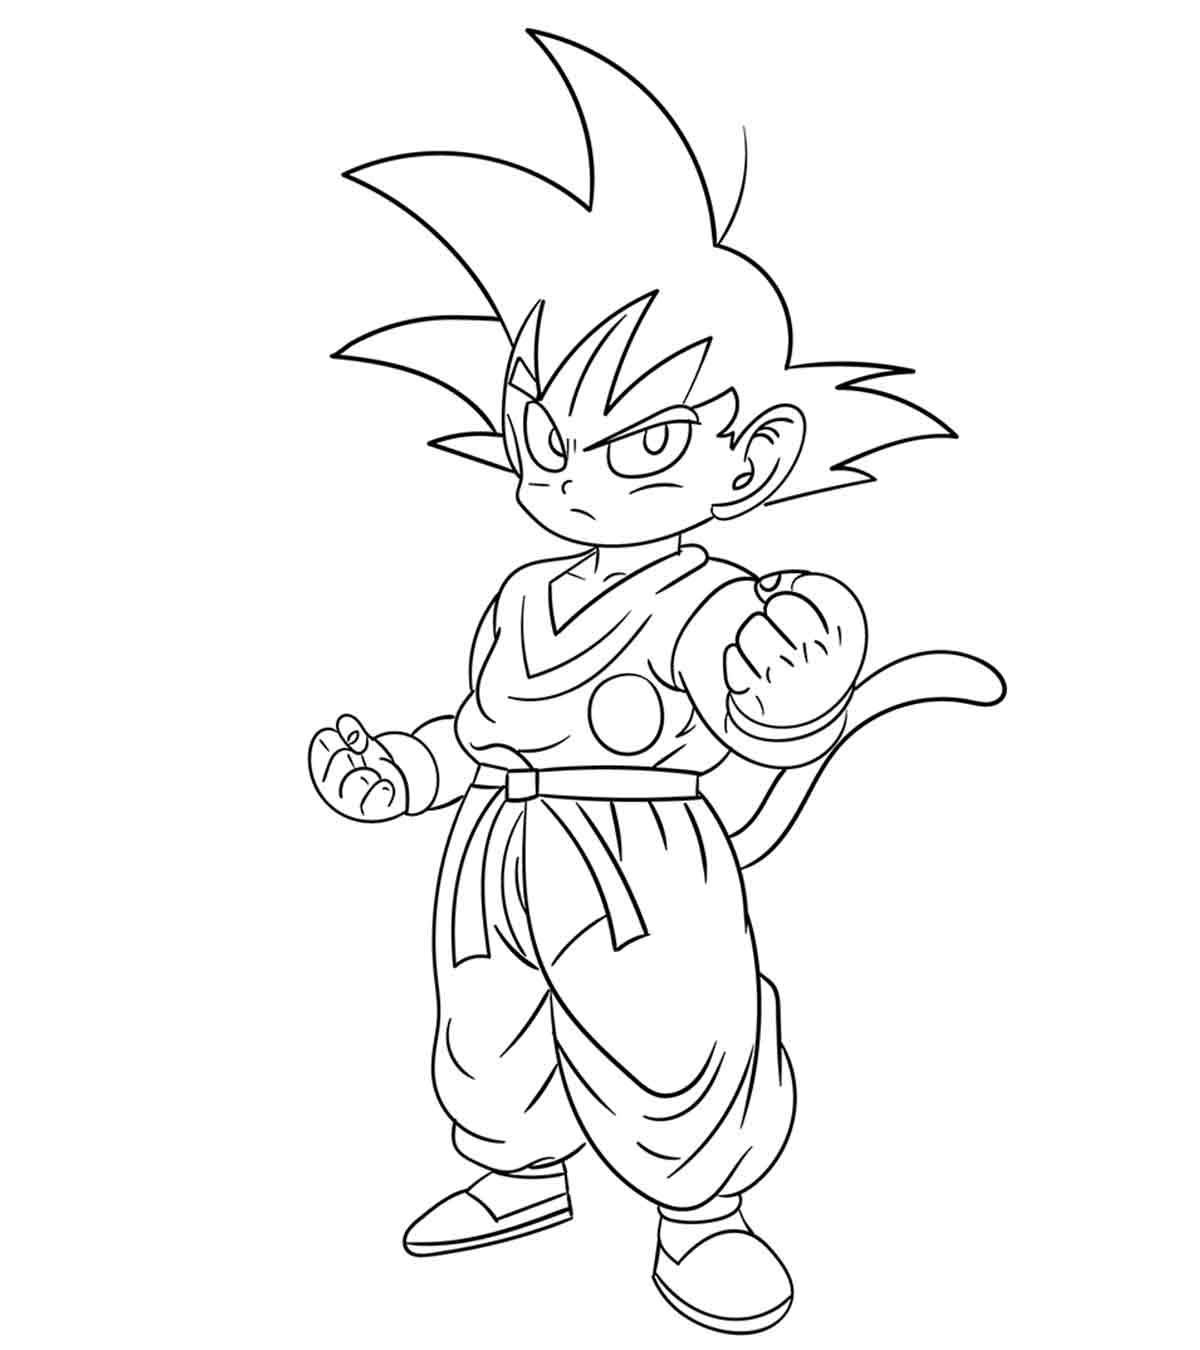 Black Coloring Pages Top 20 Dragon Ball Z Coloring Pages Your Toddler Will Love Gambar Manga